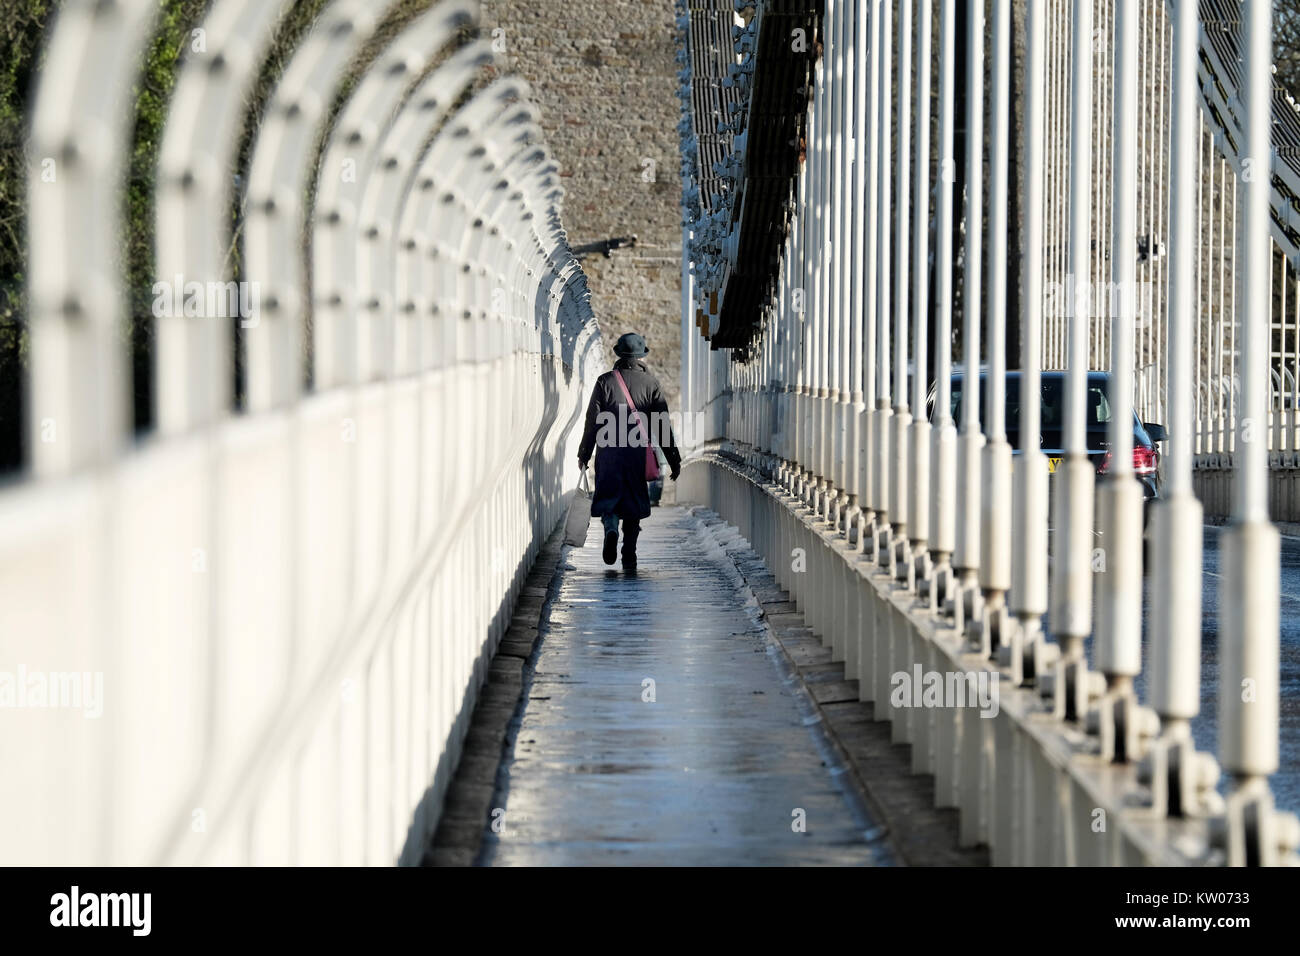 A woman carrying a large bag walking across the Clifton Suspension Bridge in Bristol, UK. A cold winter day and - Stock Image